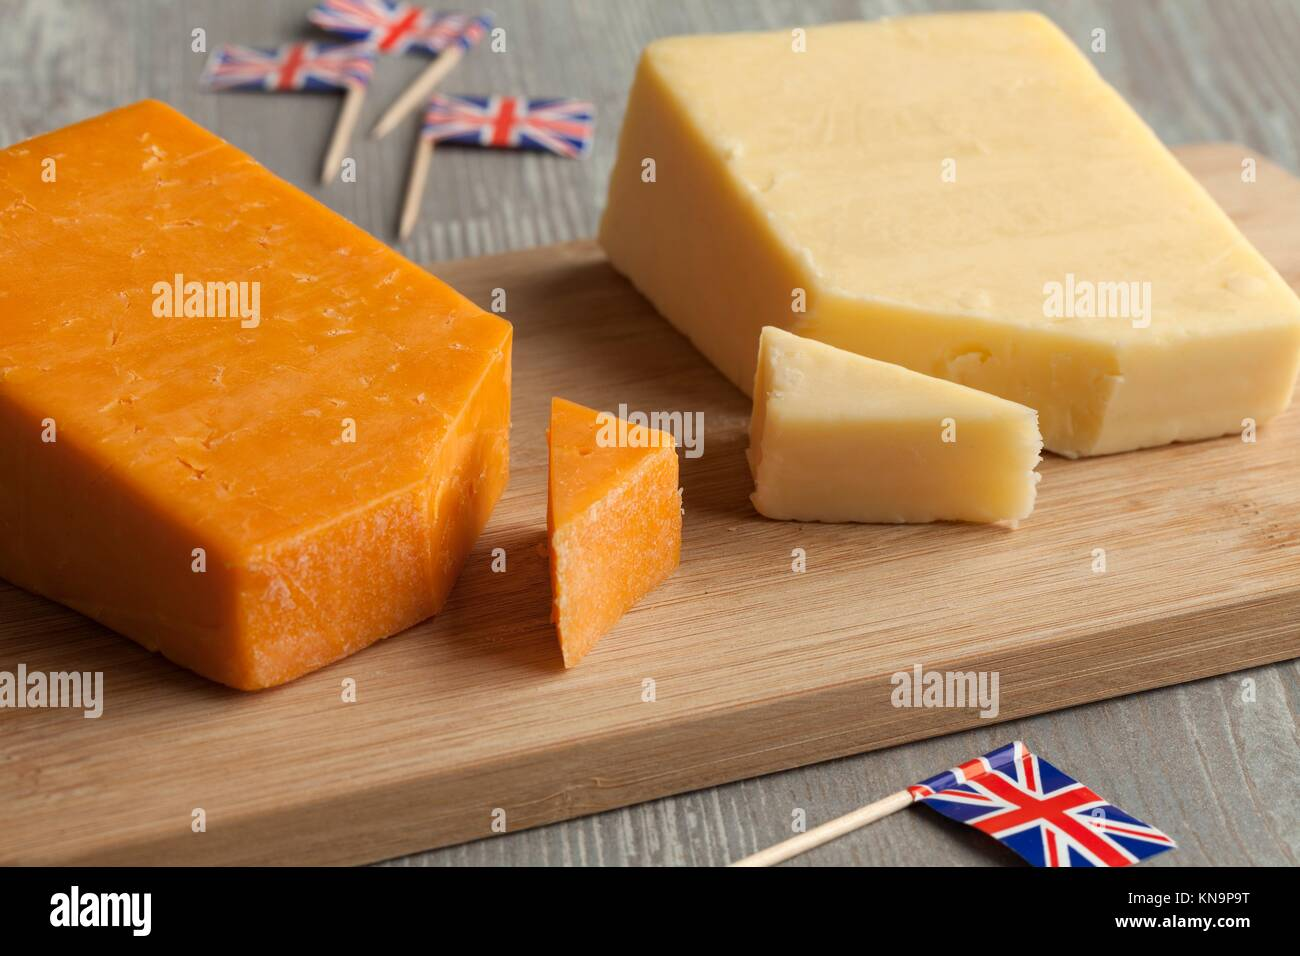 Pieces of traditional english cheese and flags Stock Photo